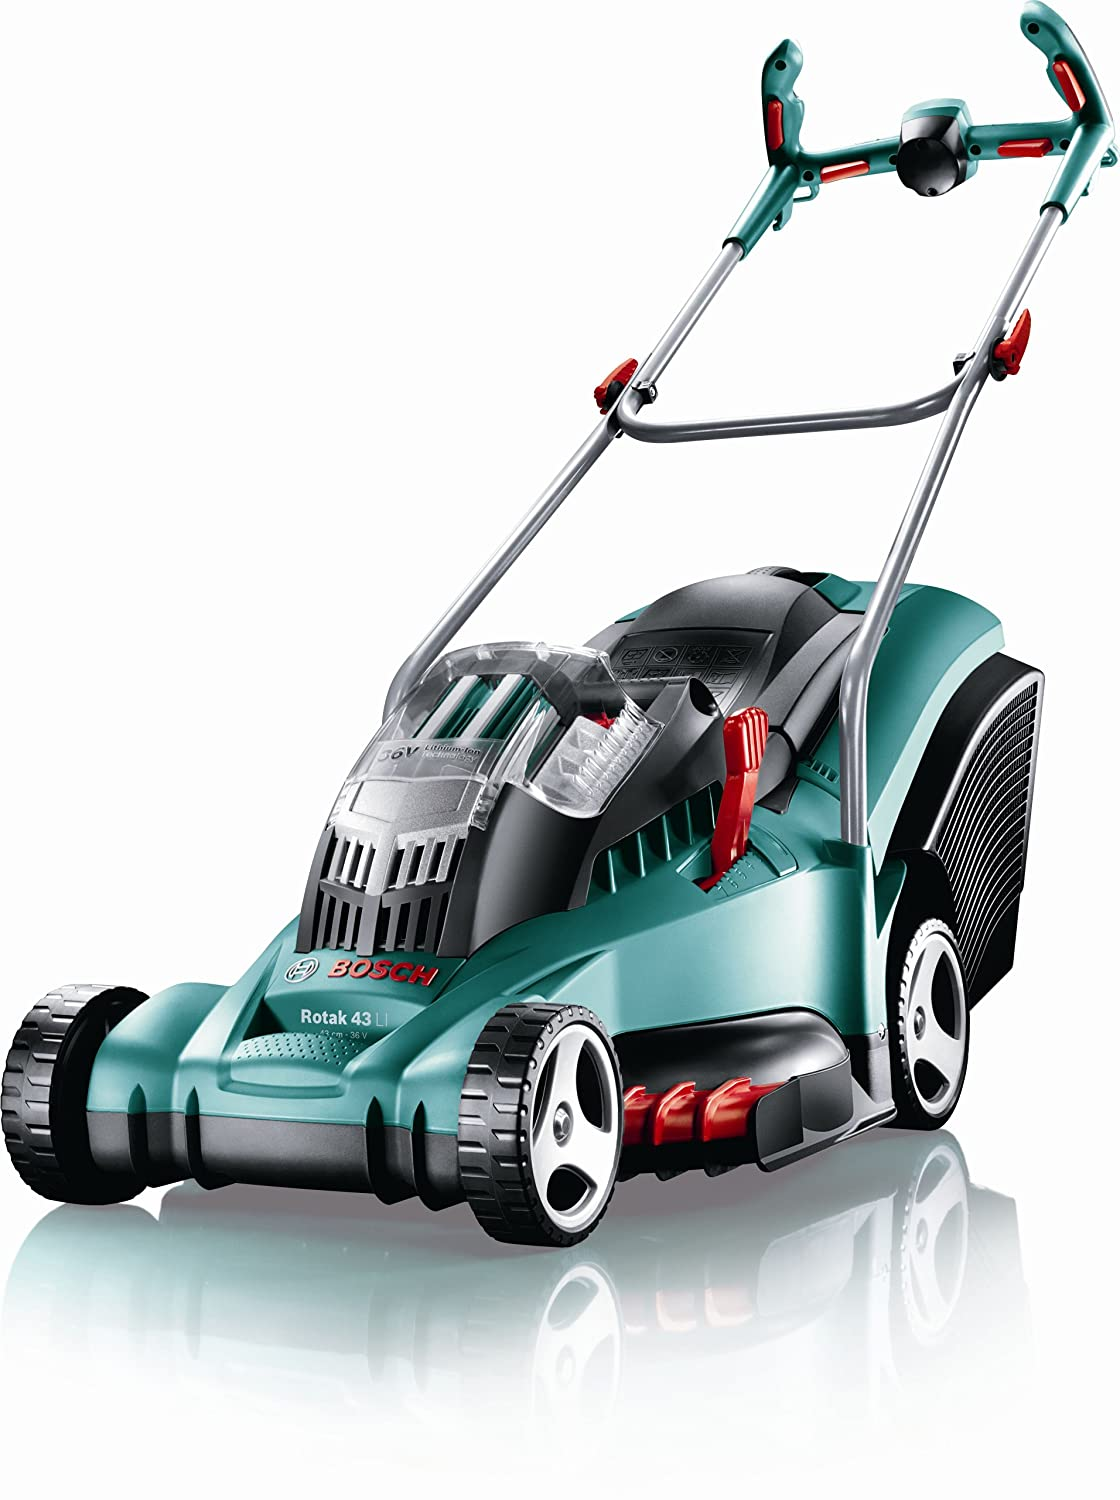 uk diy tools reviews best deals on bosch rotak 43 li ergoflex cordless rotary lawnmower in uk. Black Bedroom Furniture Sets. Home Design Ideas